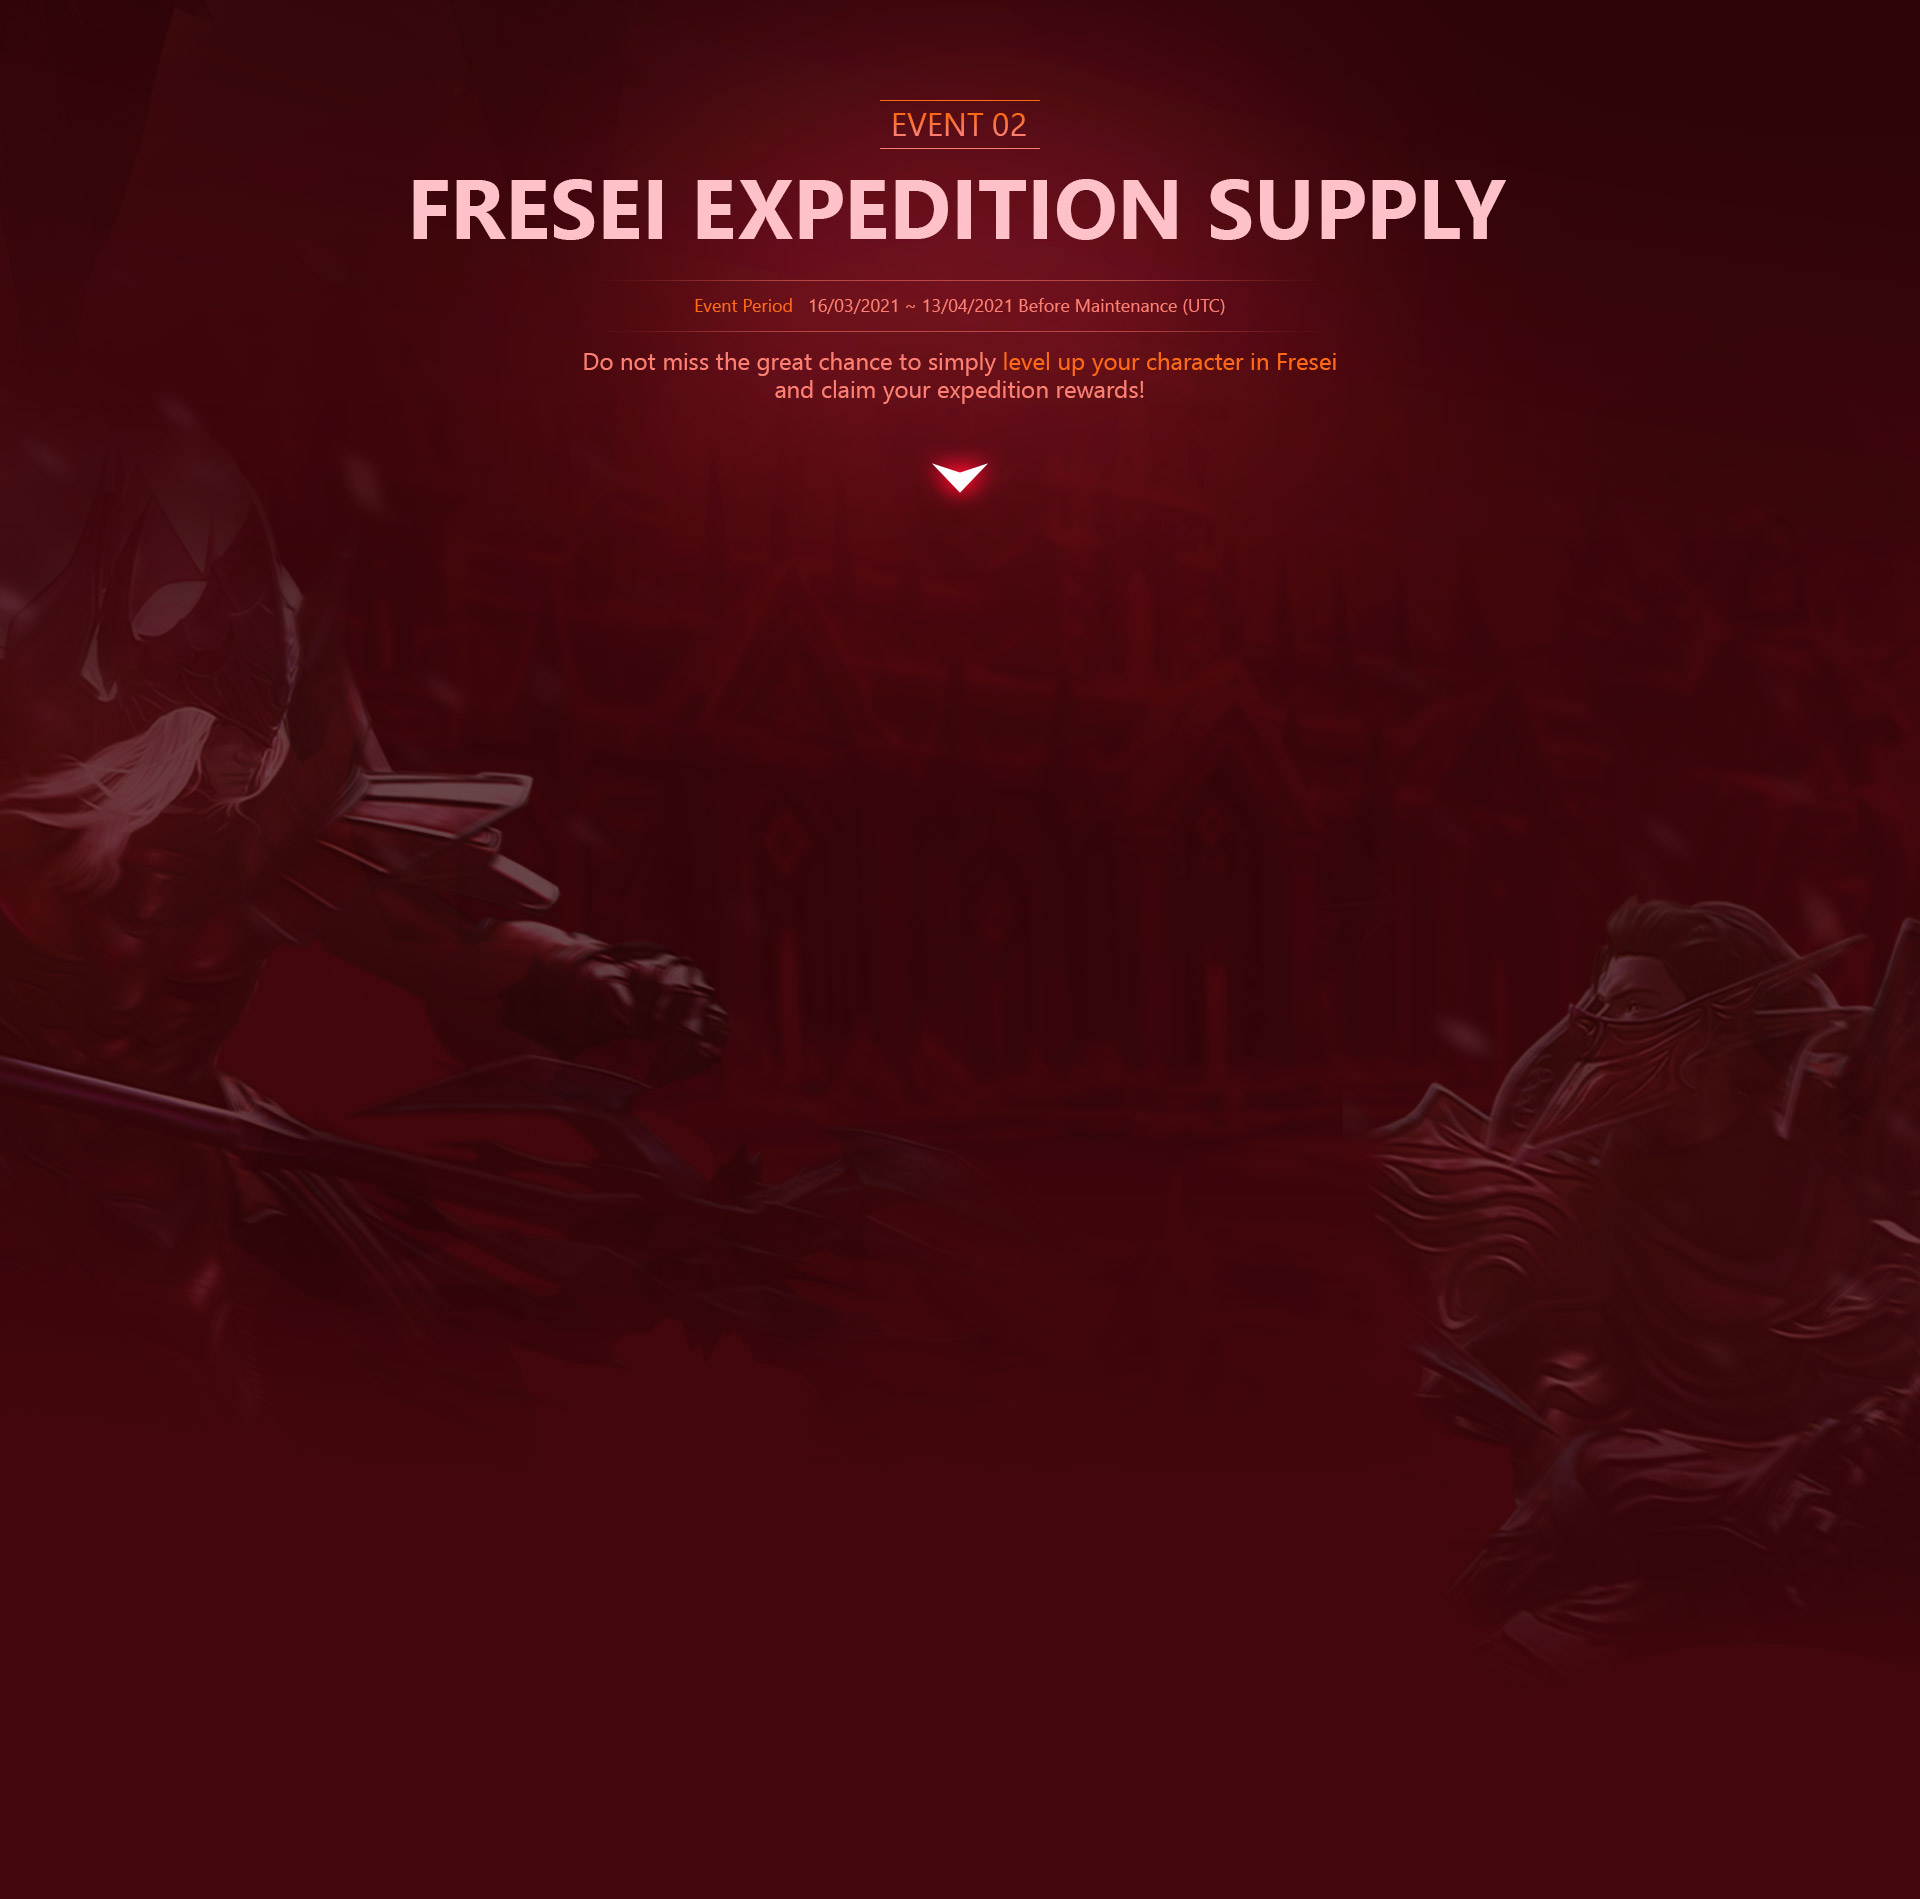 EVENT2 Fresei Expedition Supply